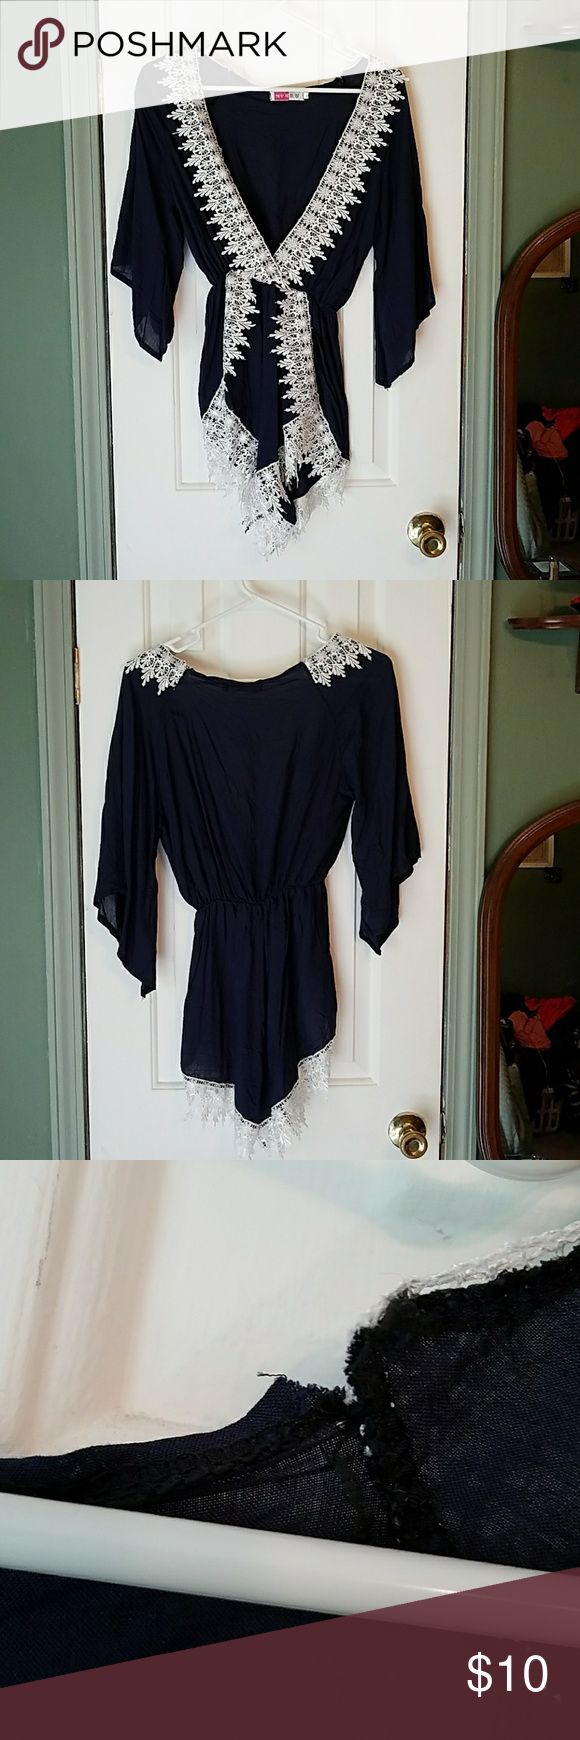 ❤ Navy jumper NWOT Light weight navy jumper with white lace trim. Perfect for summer and the beach. Never been worn but has slight tears in the upper back at the seams. From a smoke free home Size: Asia large = American small. Other